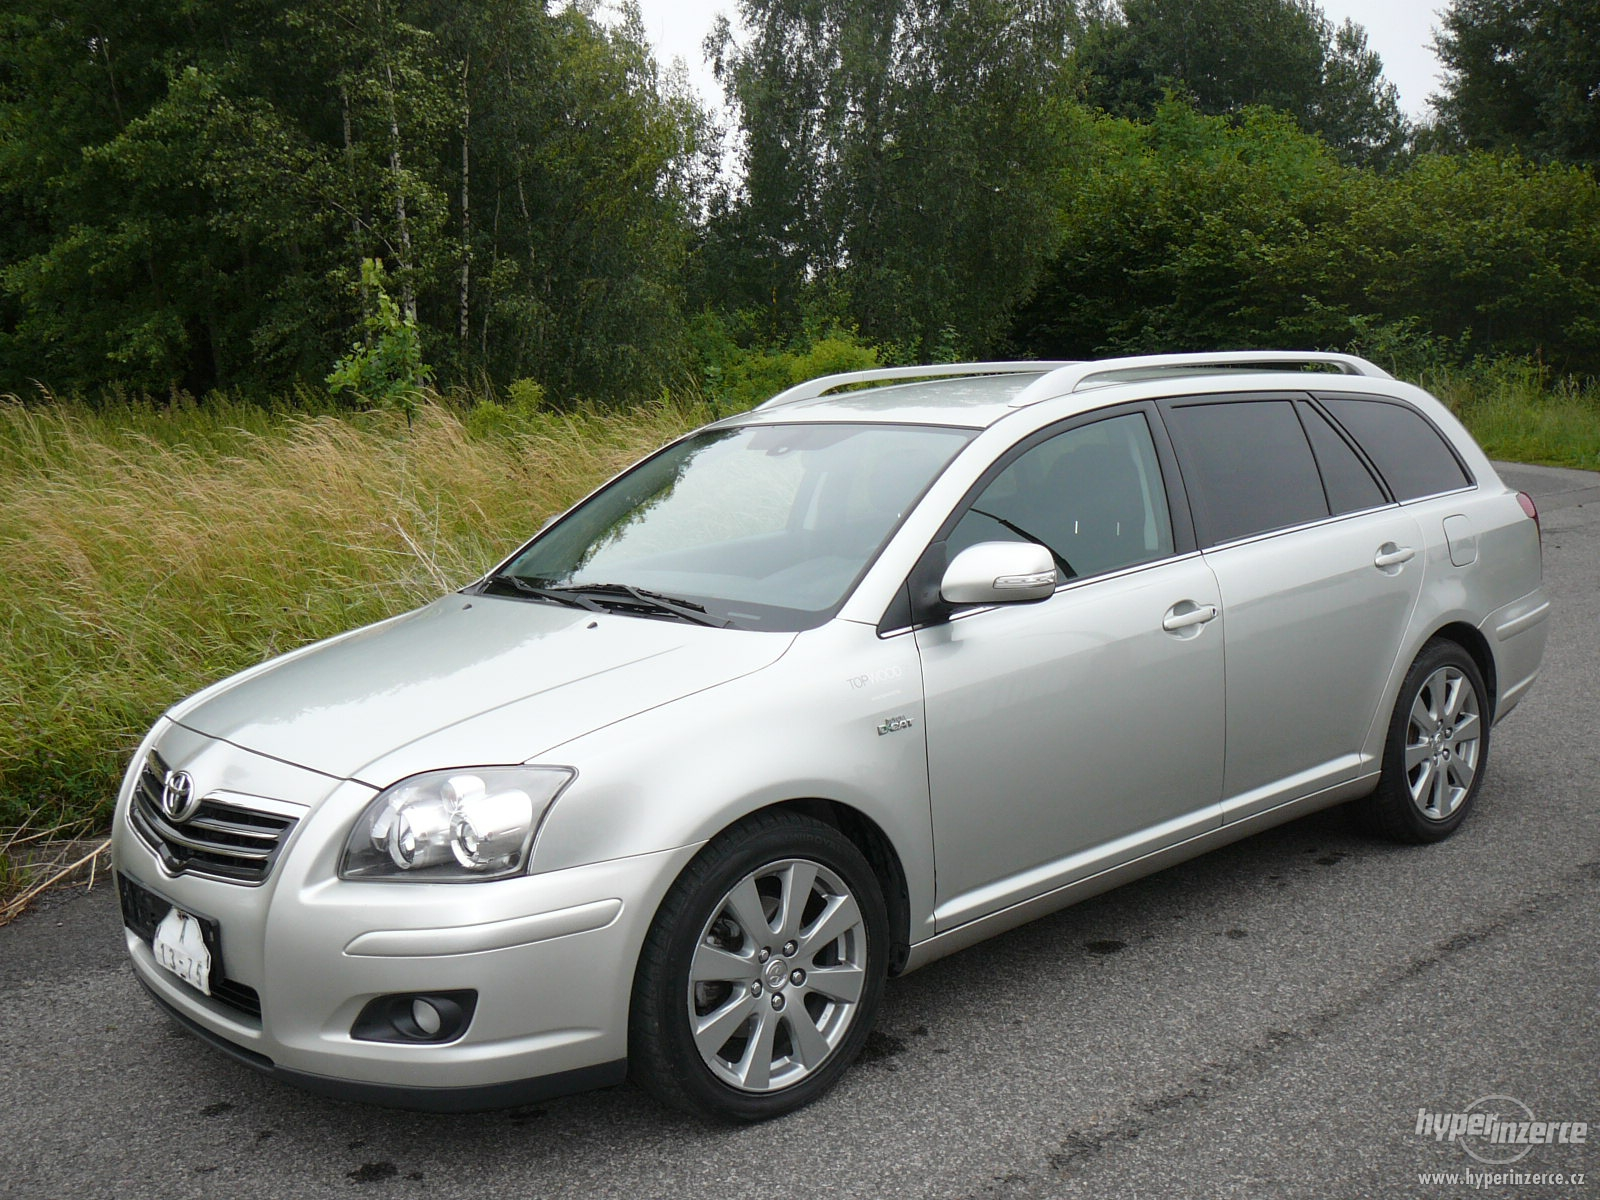 Toyota Avensis 2.2 D-CAT photo 13